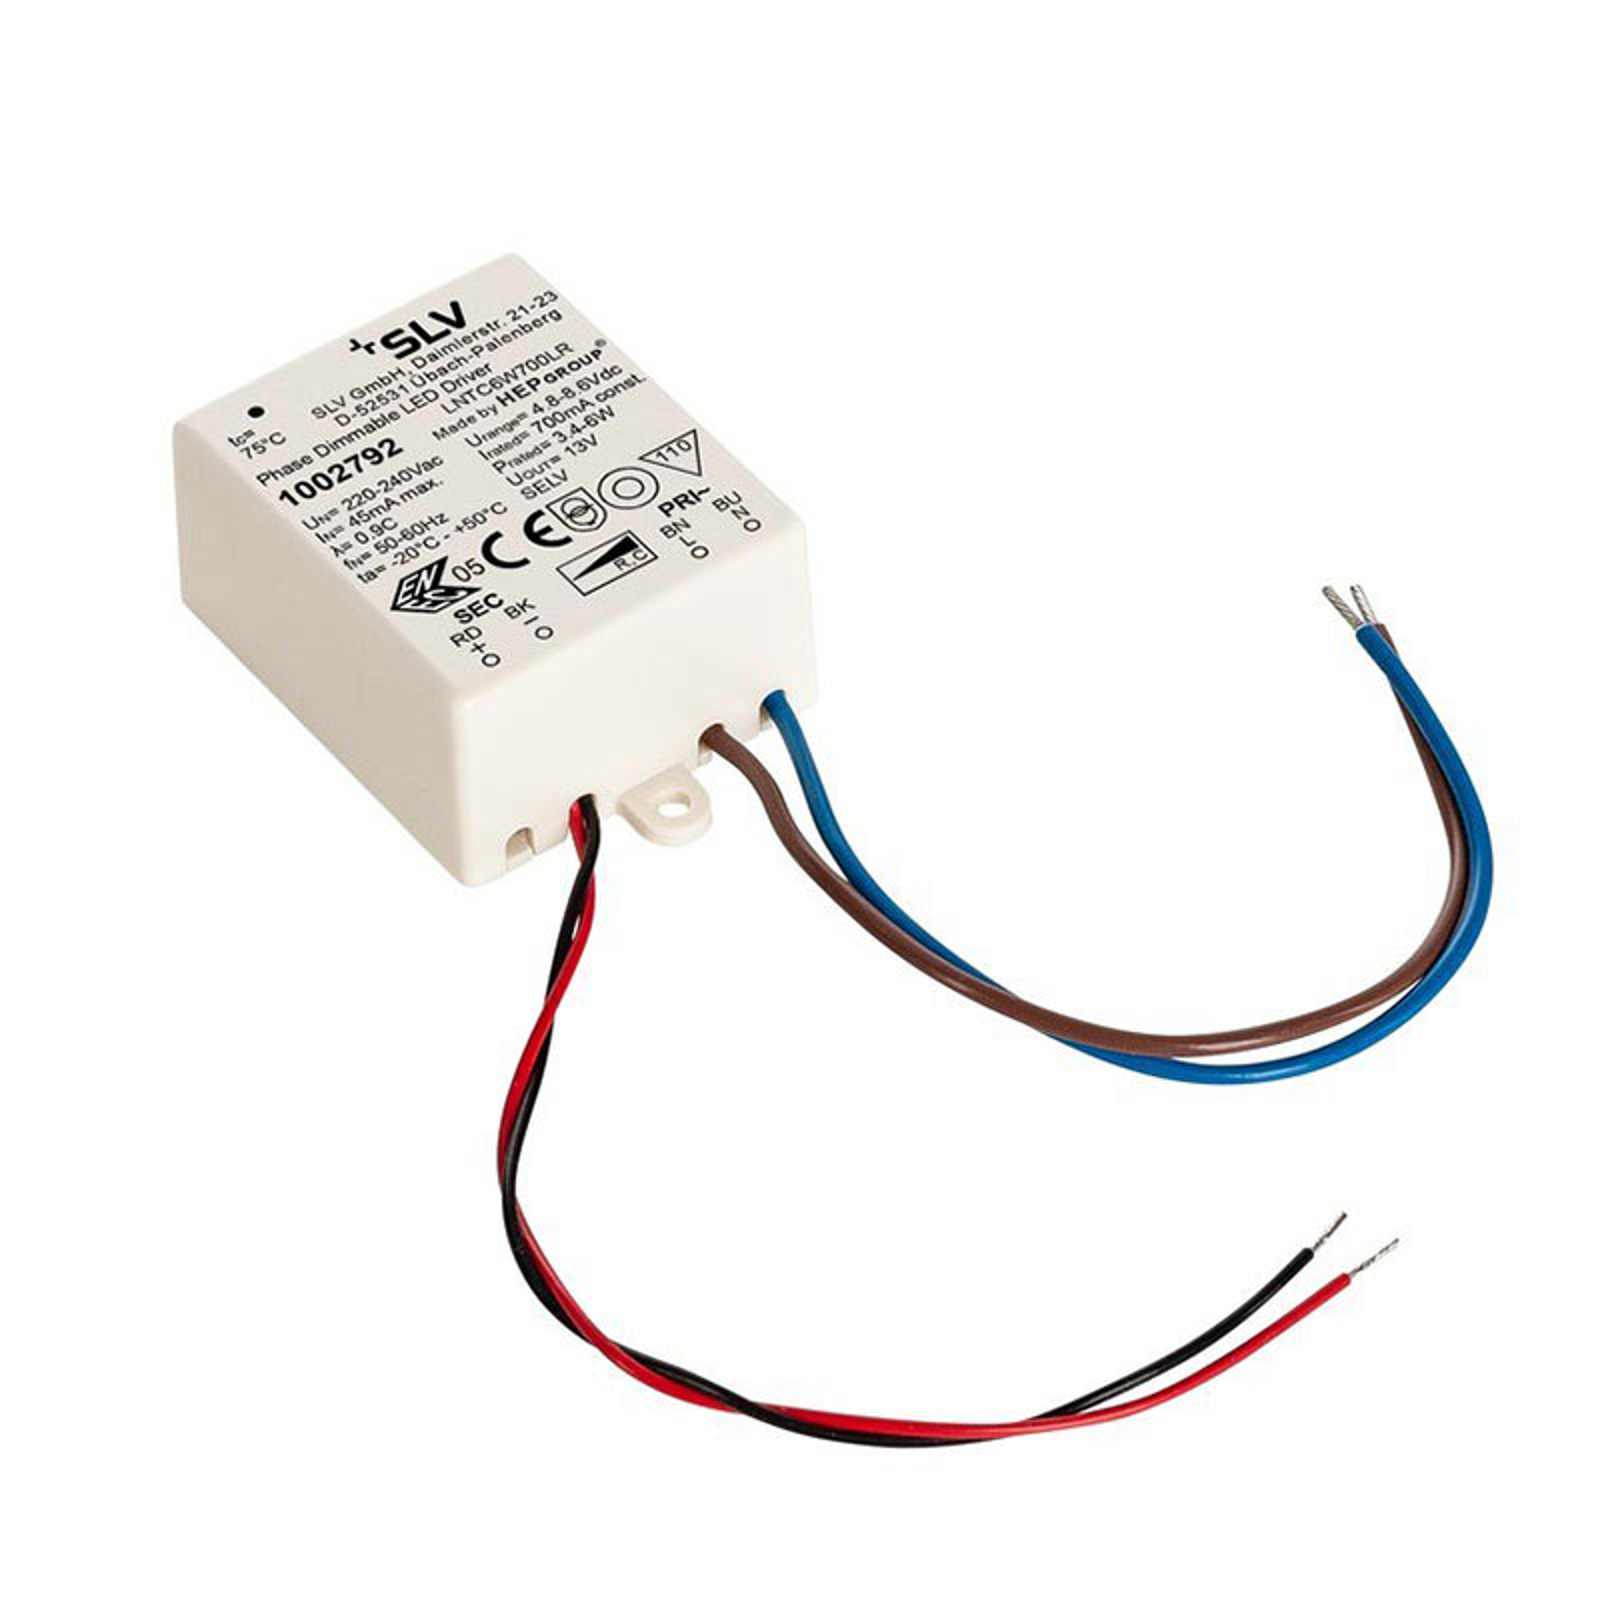 SLV driver LED 6W, 700mA, dimming TRIAC